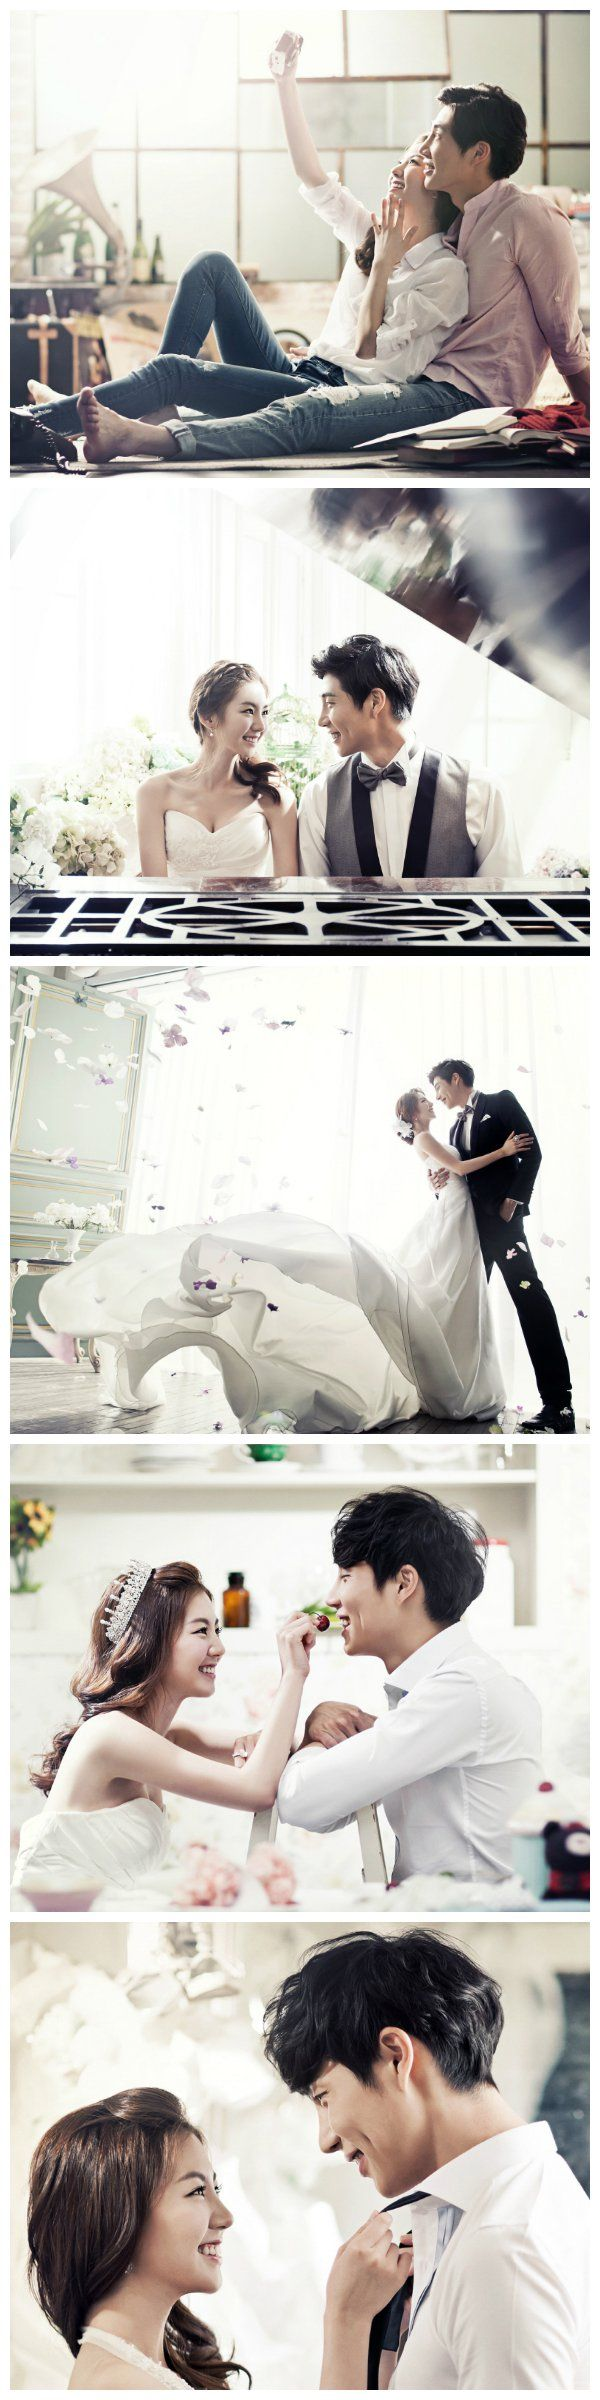 Korean pre-wedding photography in studio | May Studio on www.onethreeonefour.com